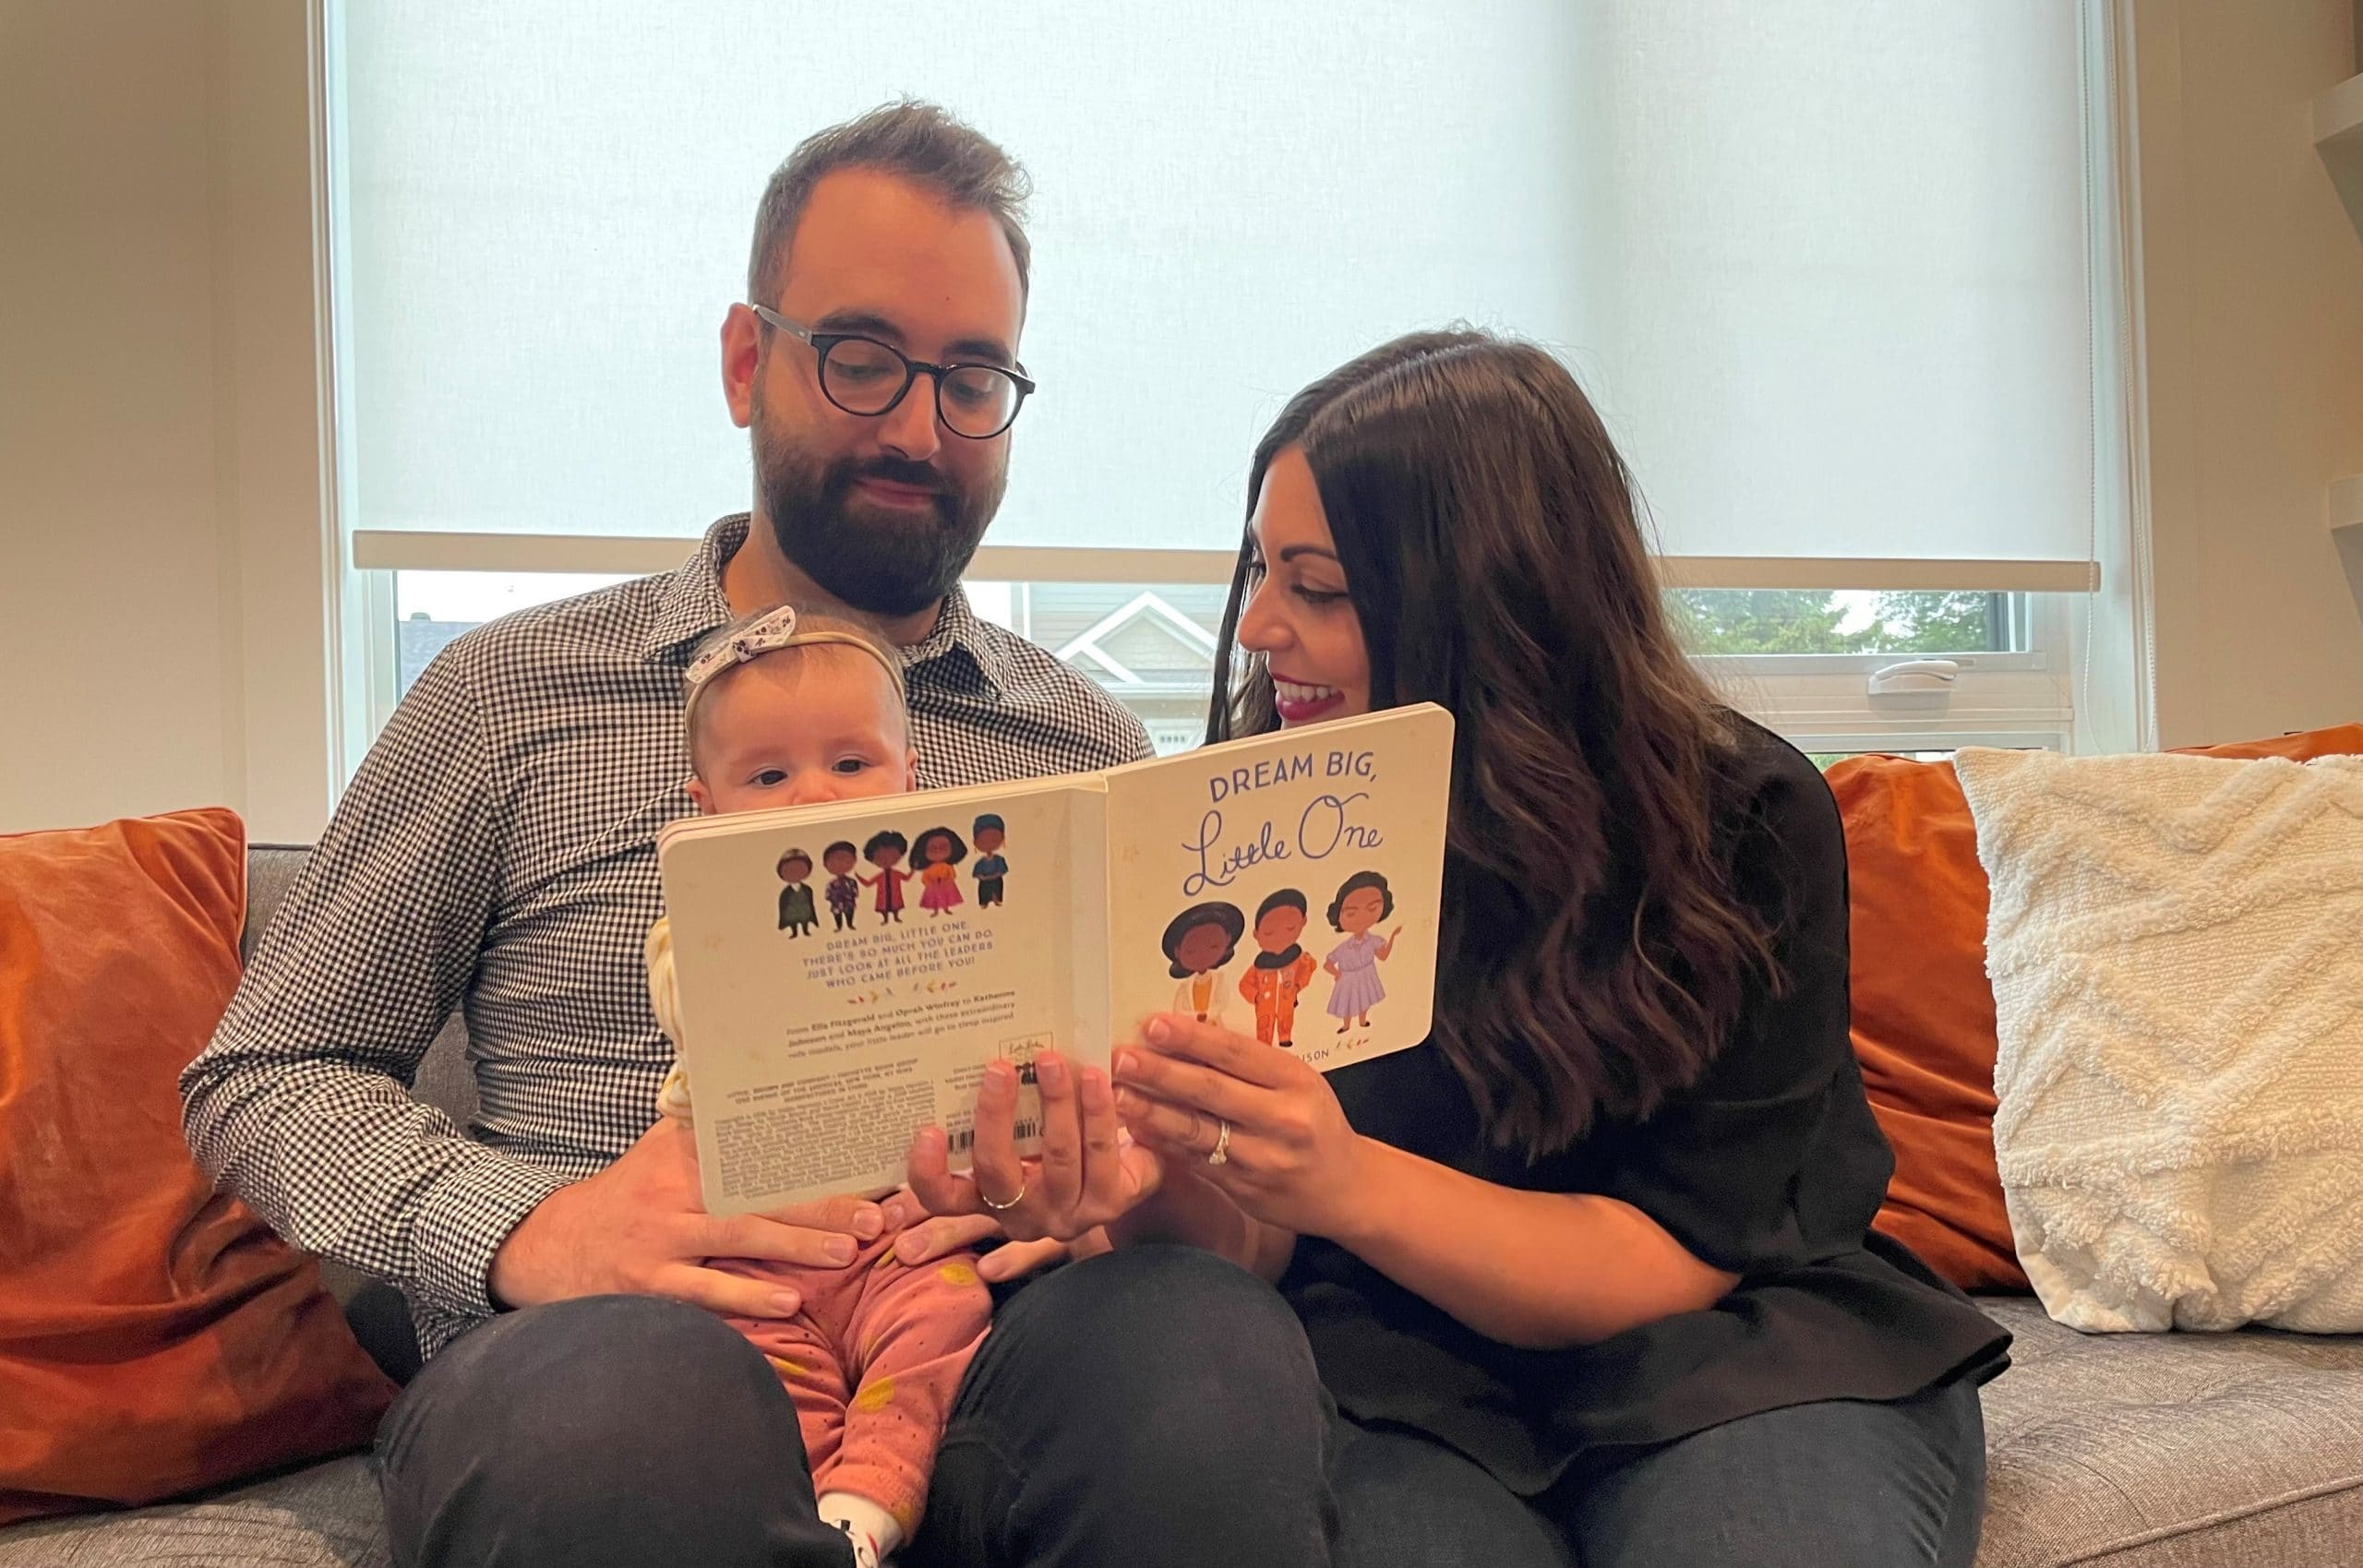 The Afonso family sit on a couch while reading a book to their baby